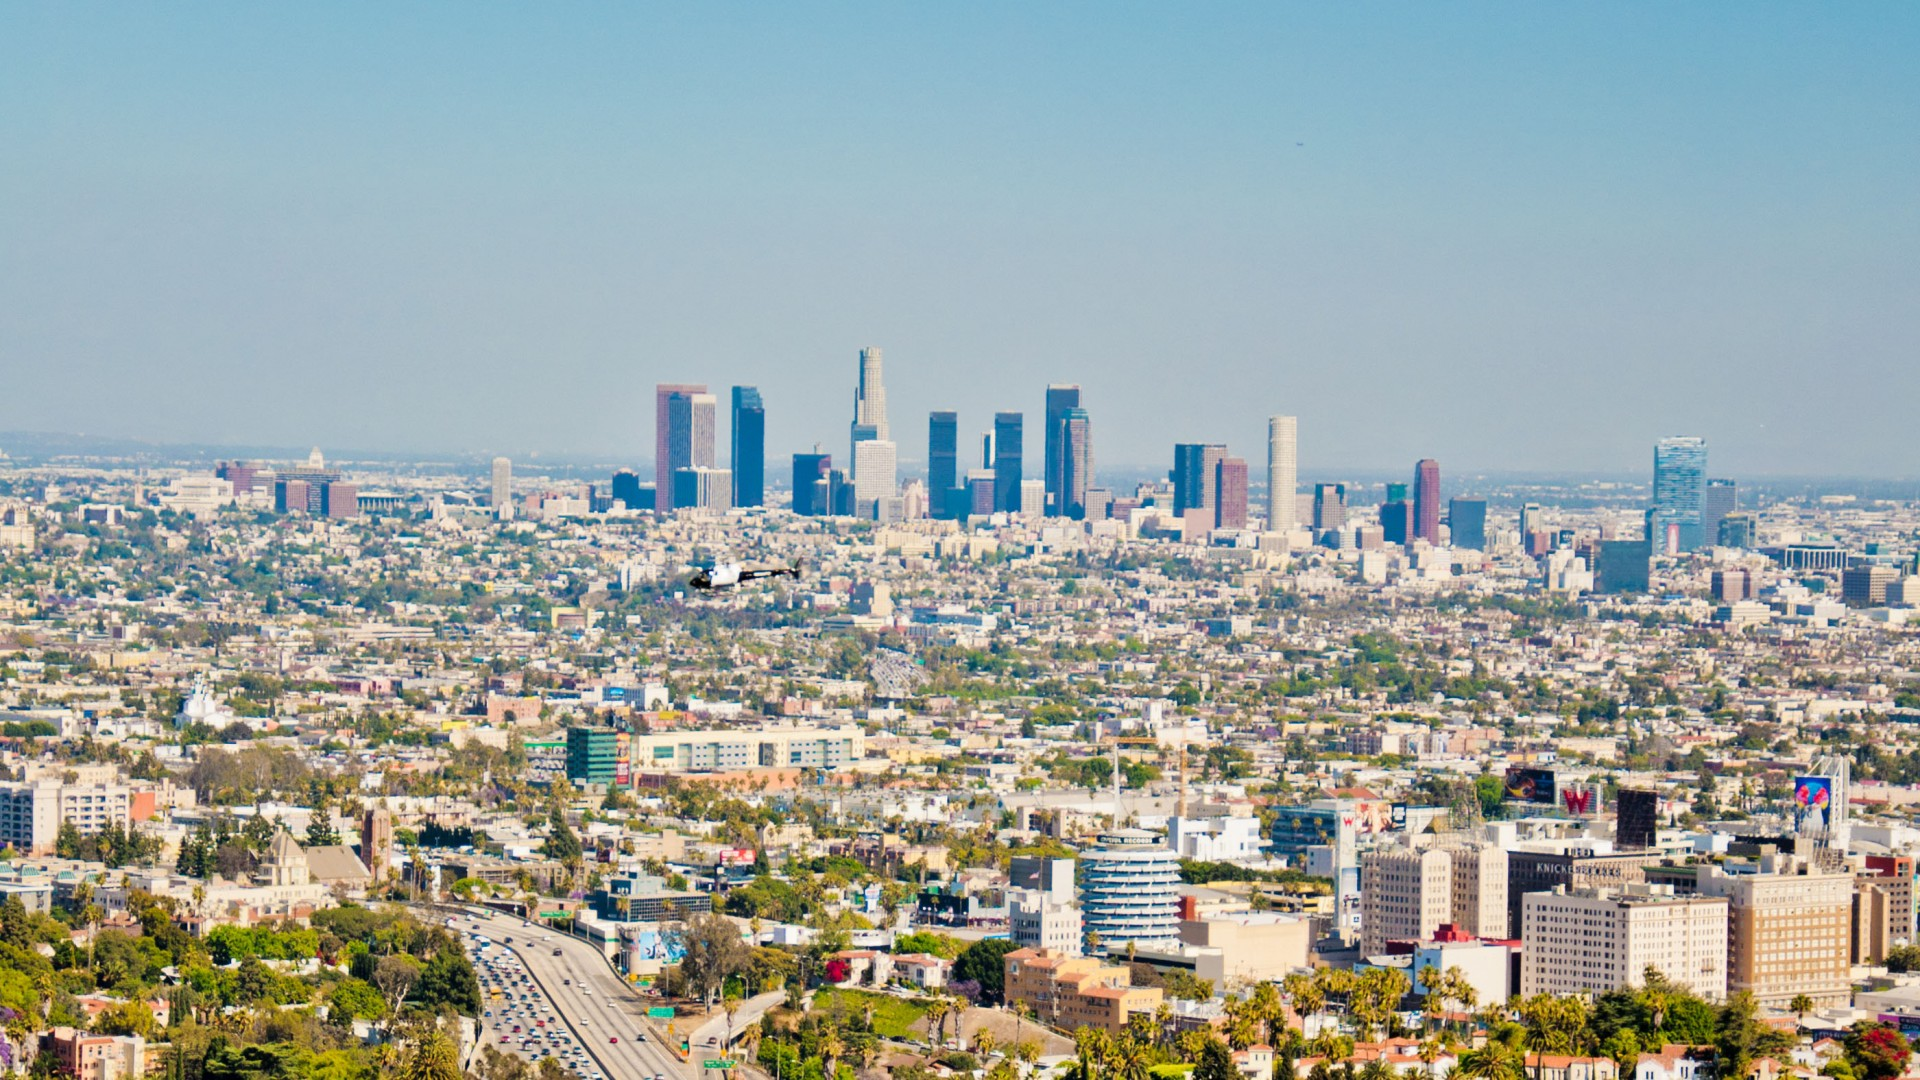 Los Angeles United States   HQ  for PC HD Wallpaper